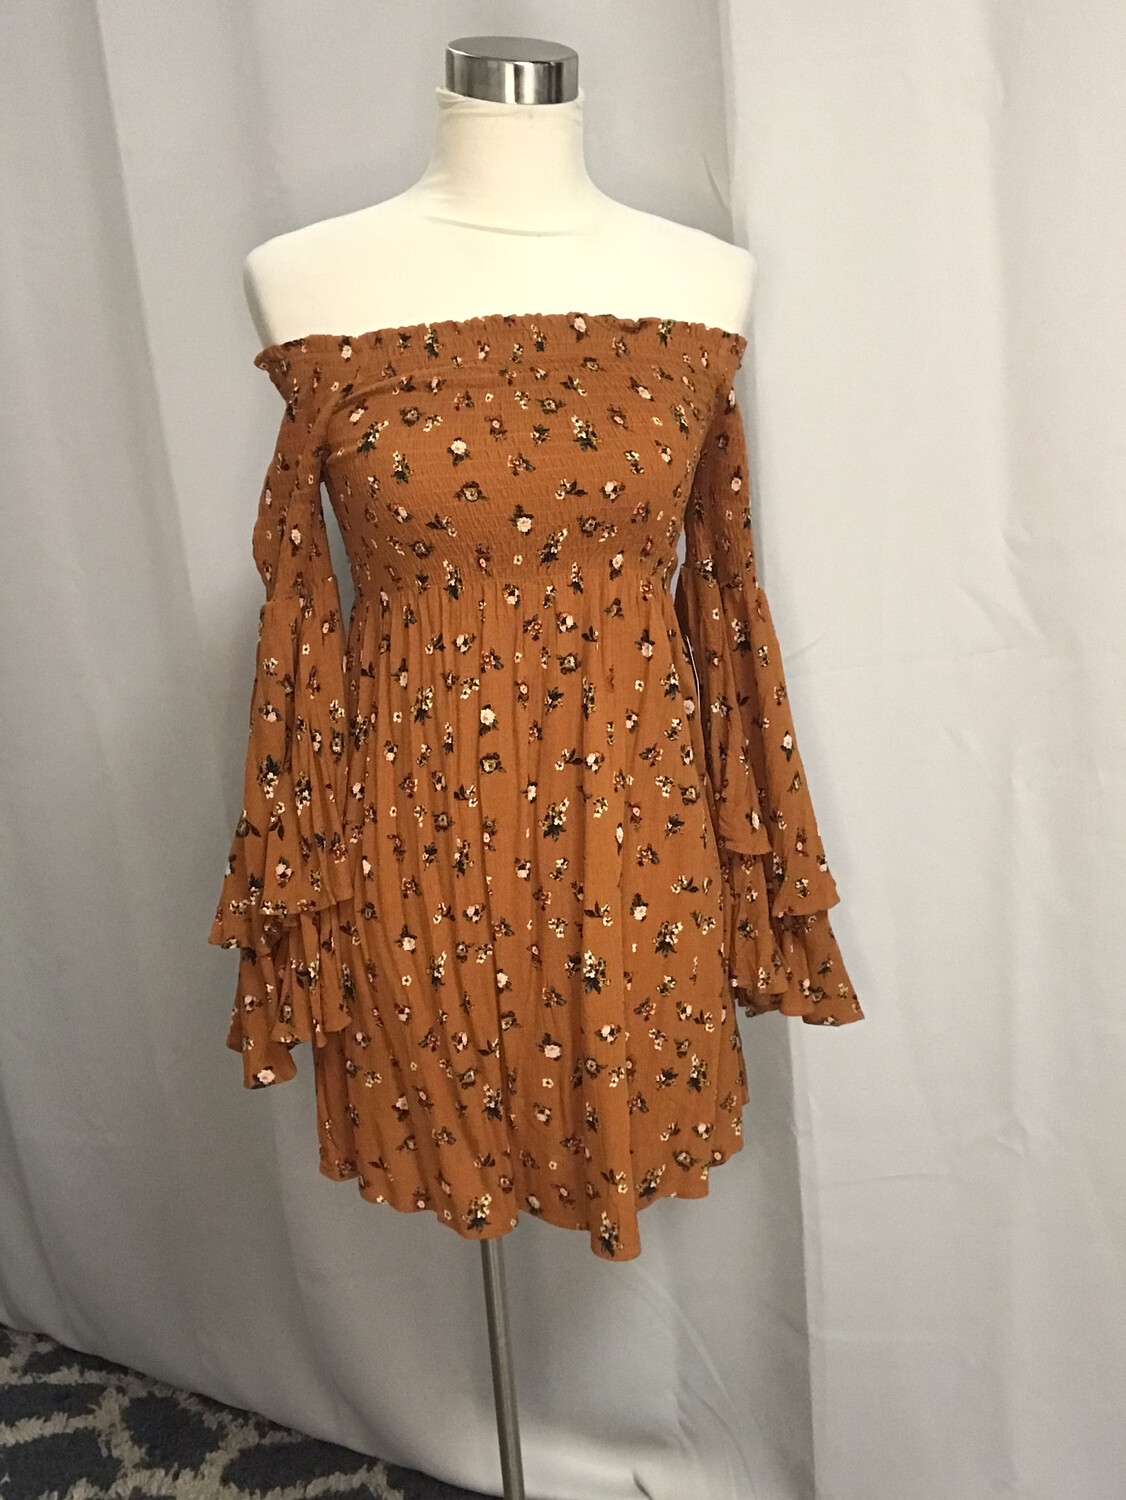 Love You Bunches Orange Floral Dress - S